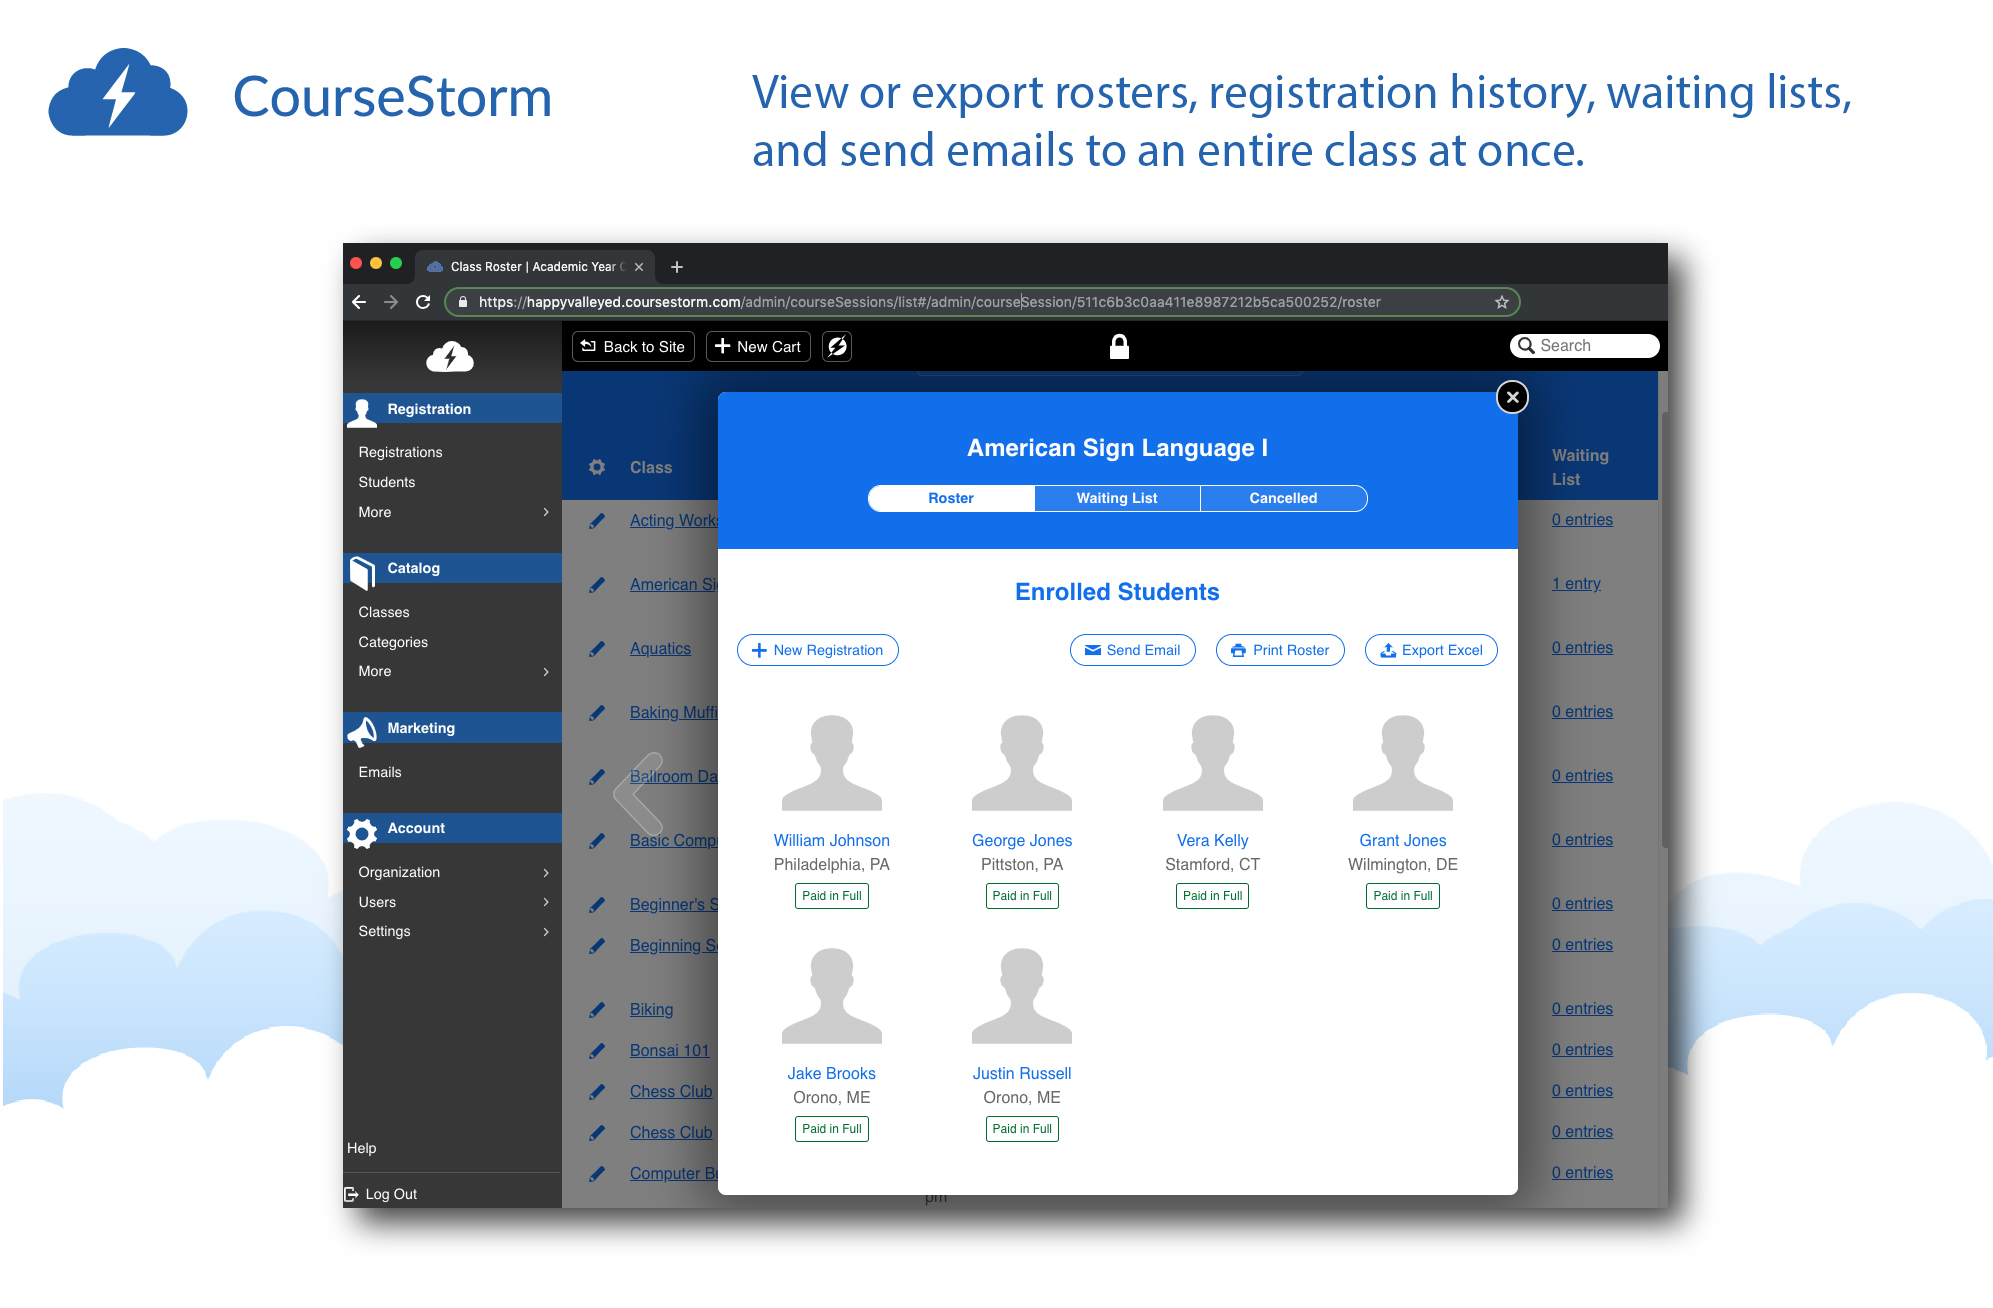 View or export rosters, registration history, waiting lists, and send emails to an entire class at once.